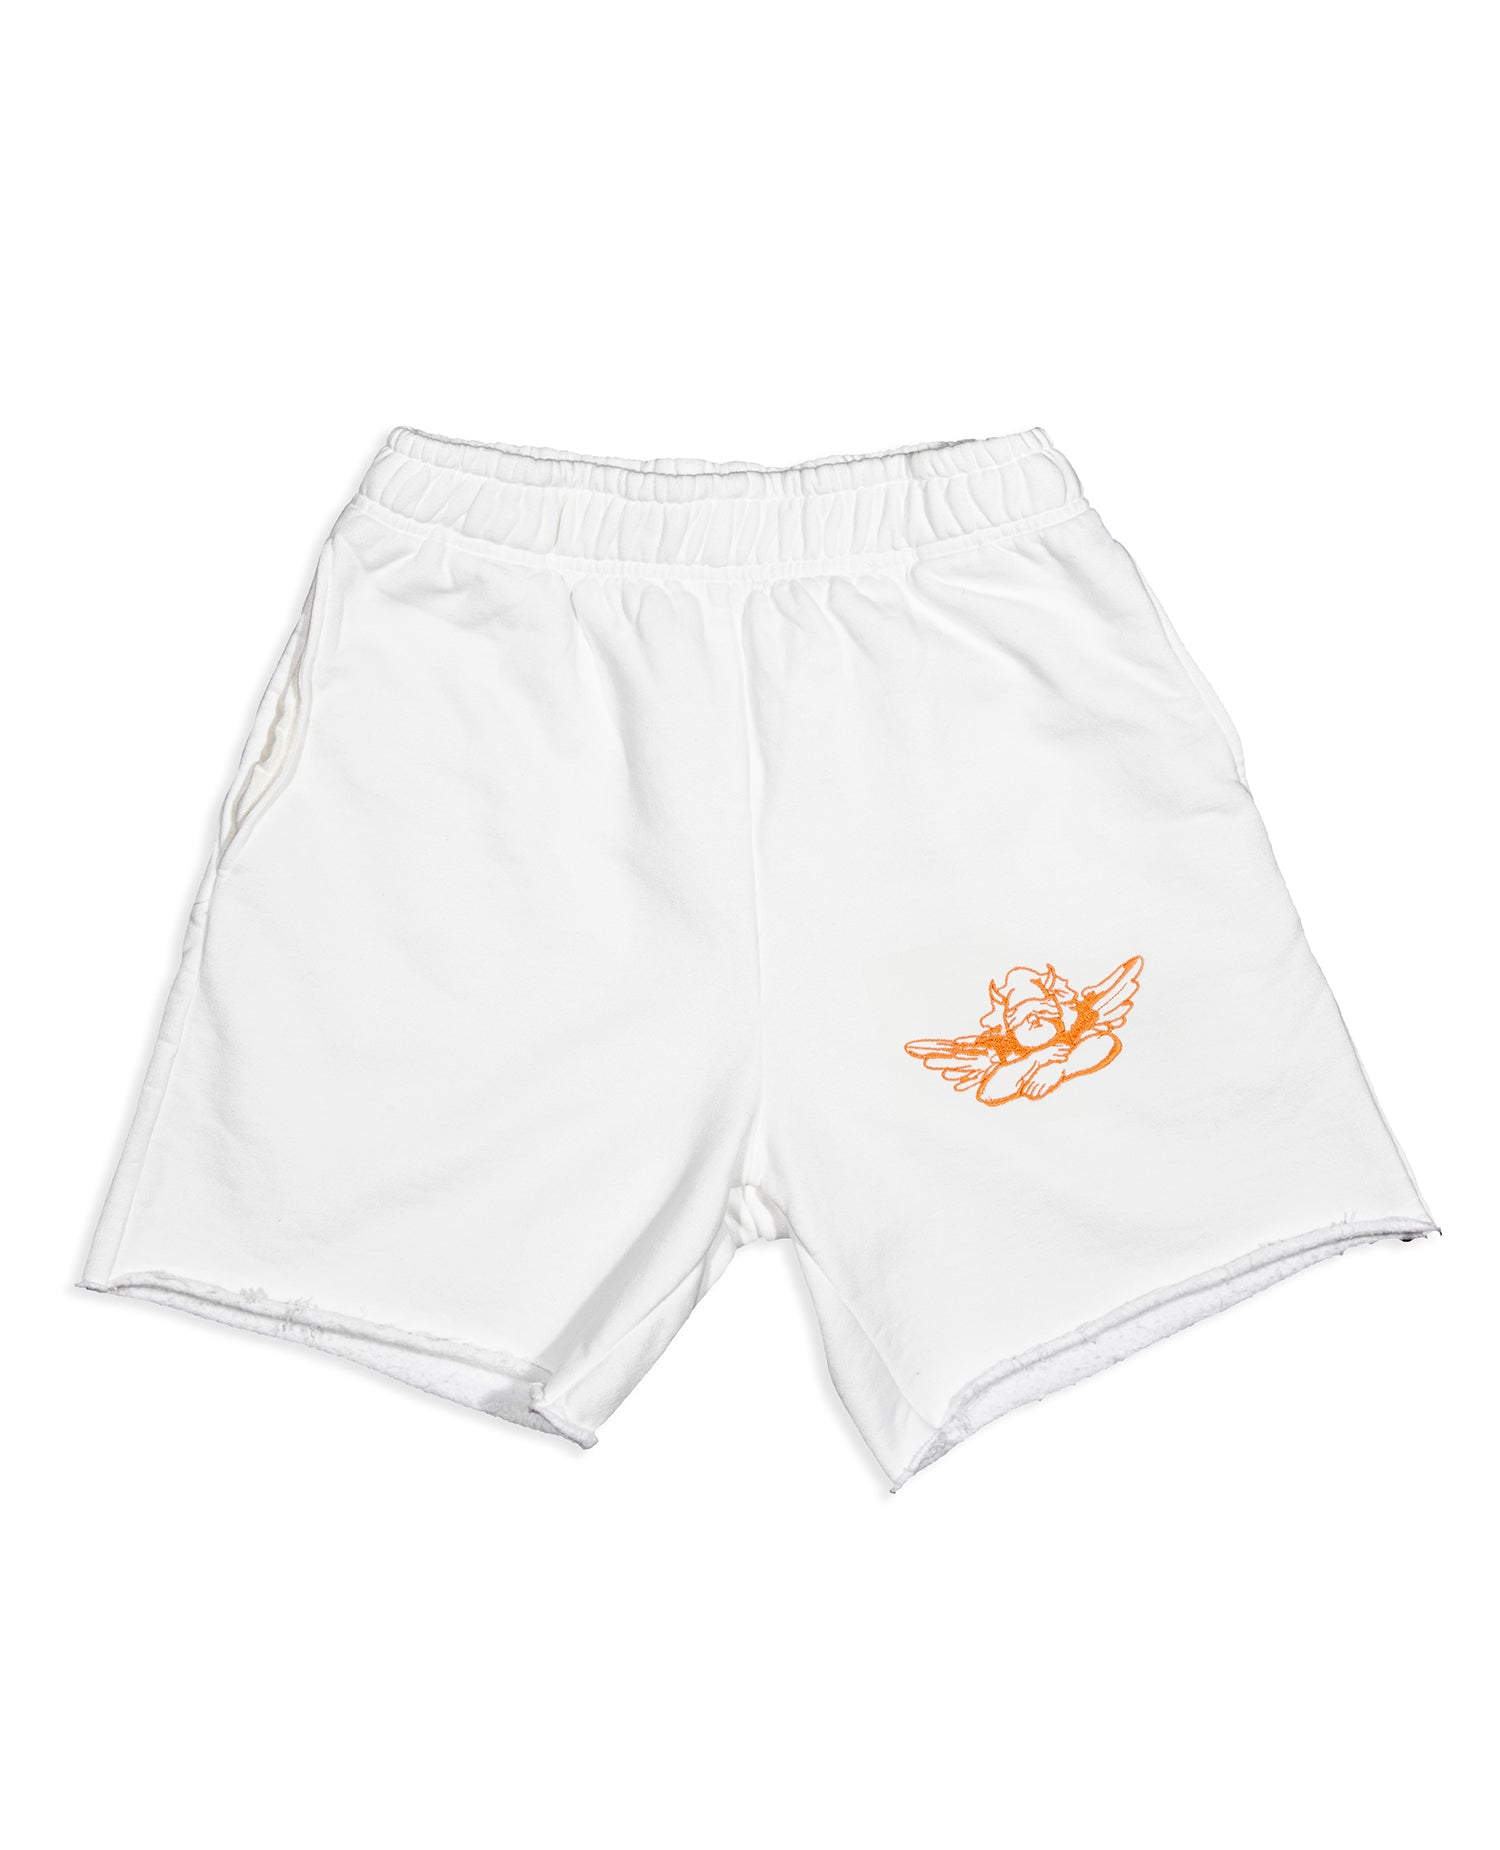 Brilliant White V2 Shorts